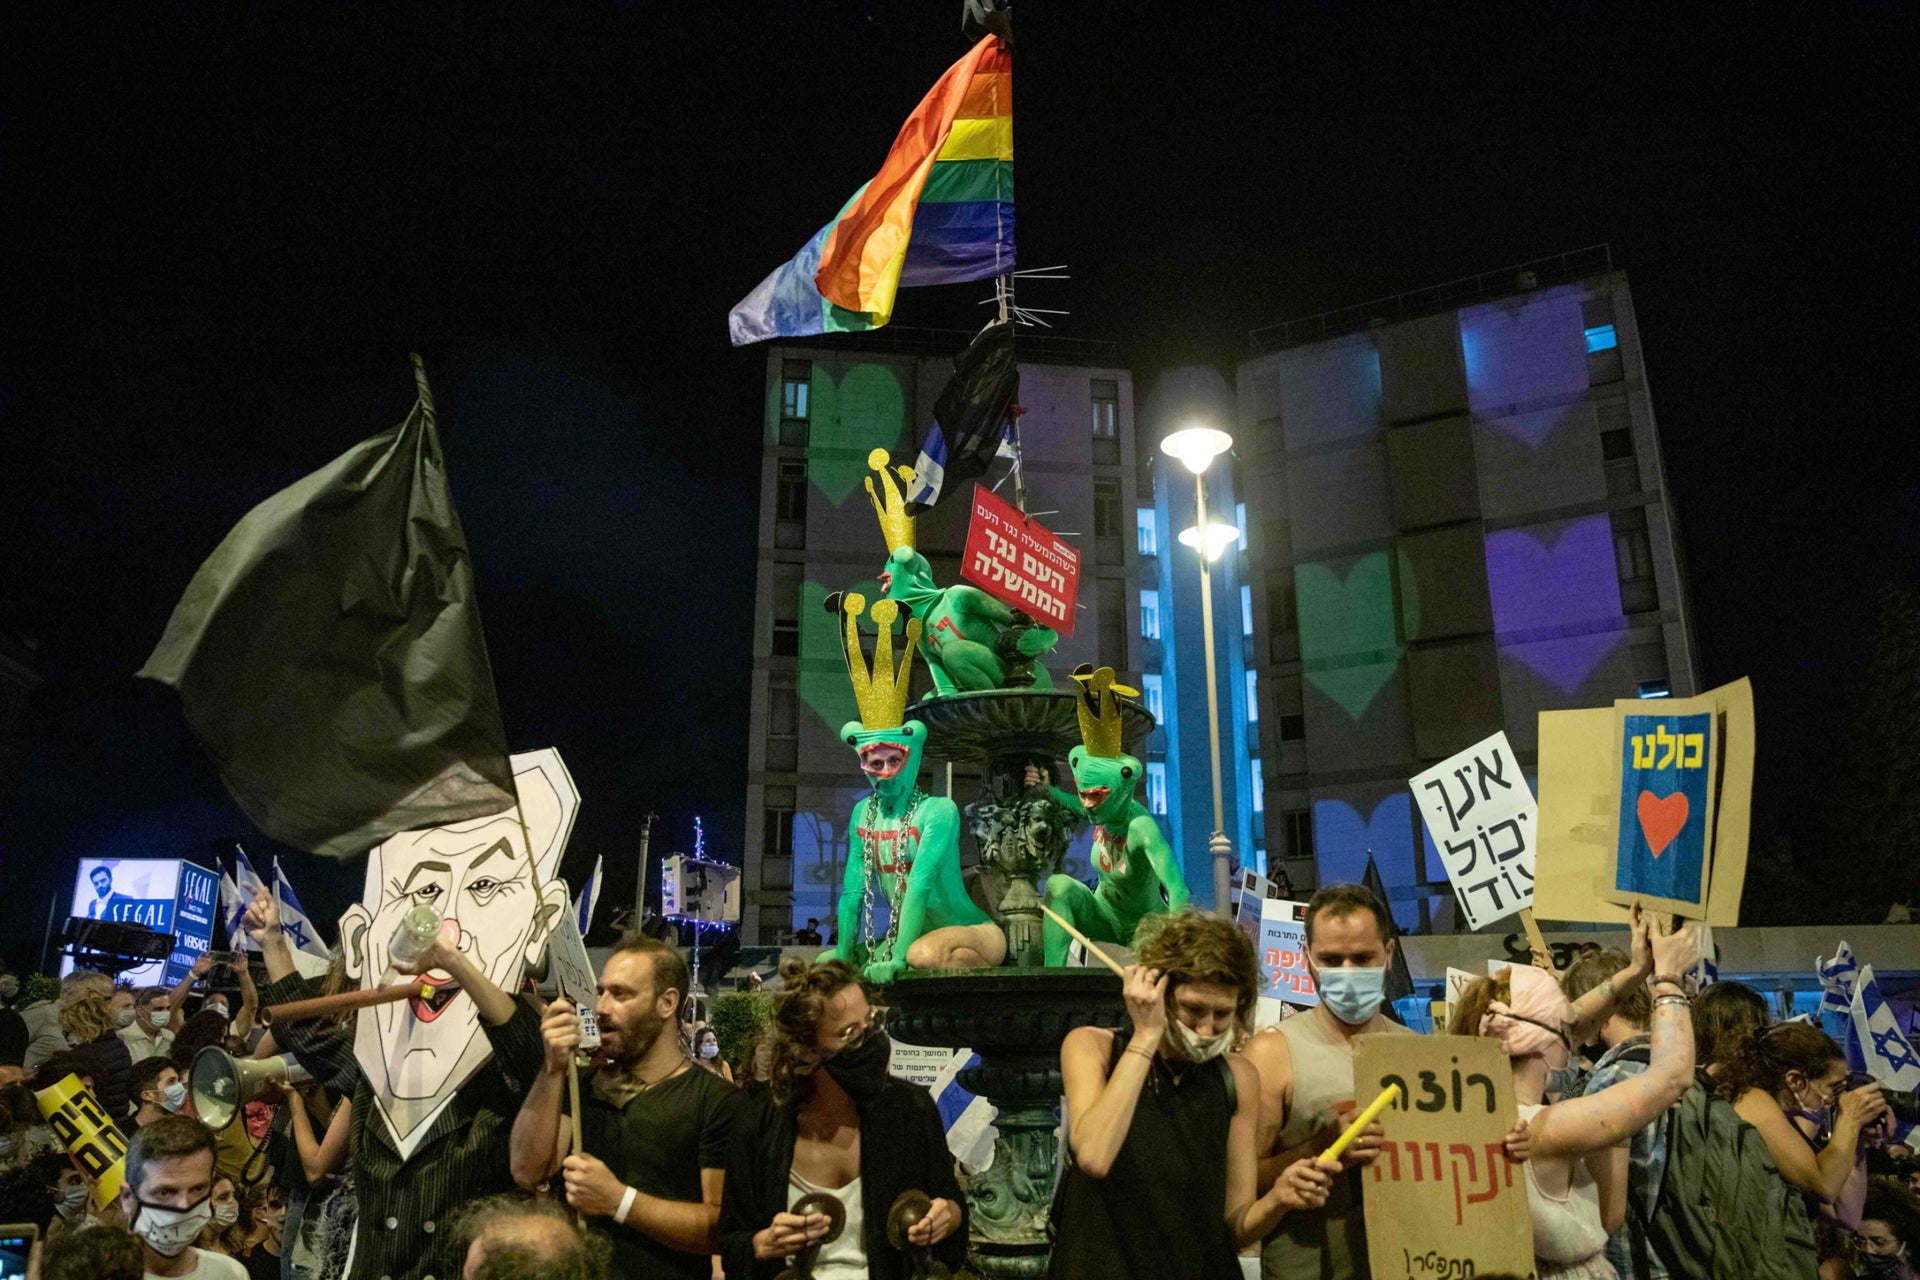 Demonstrators are seen protesting under an LGBT pride flag hanging above the Paris Square in Jerusalem, August 2020.